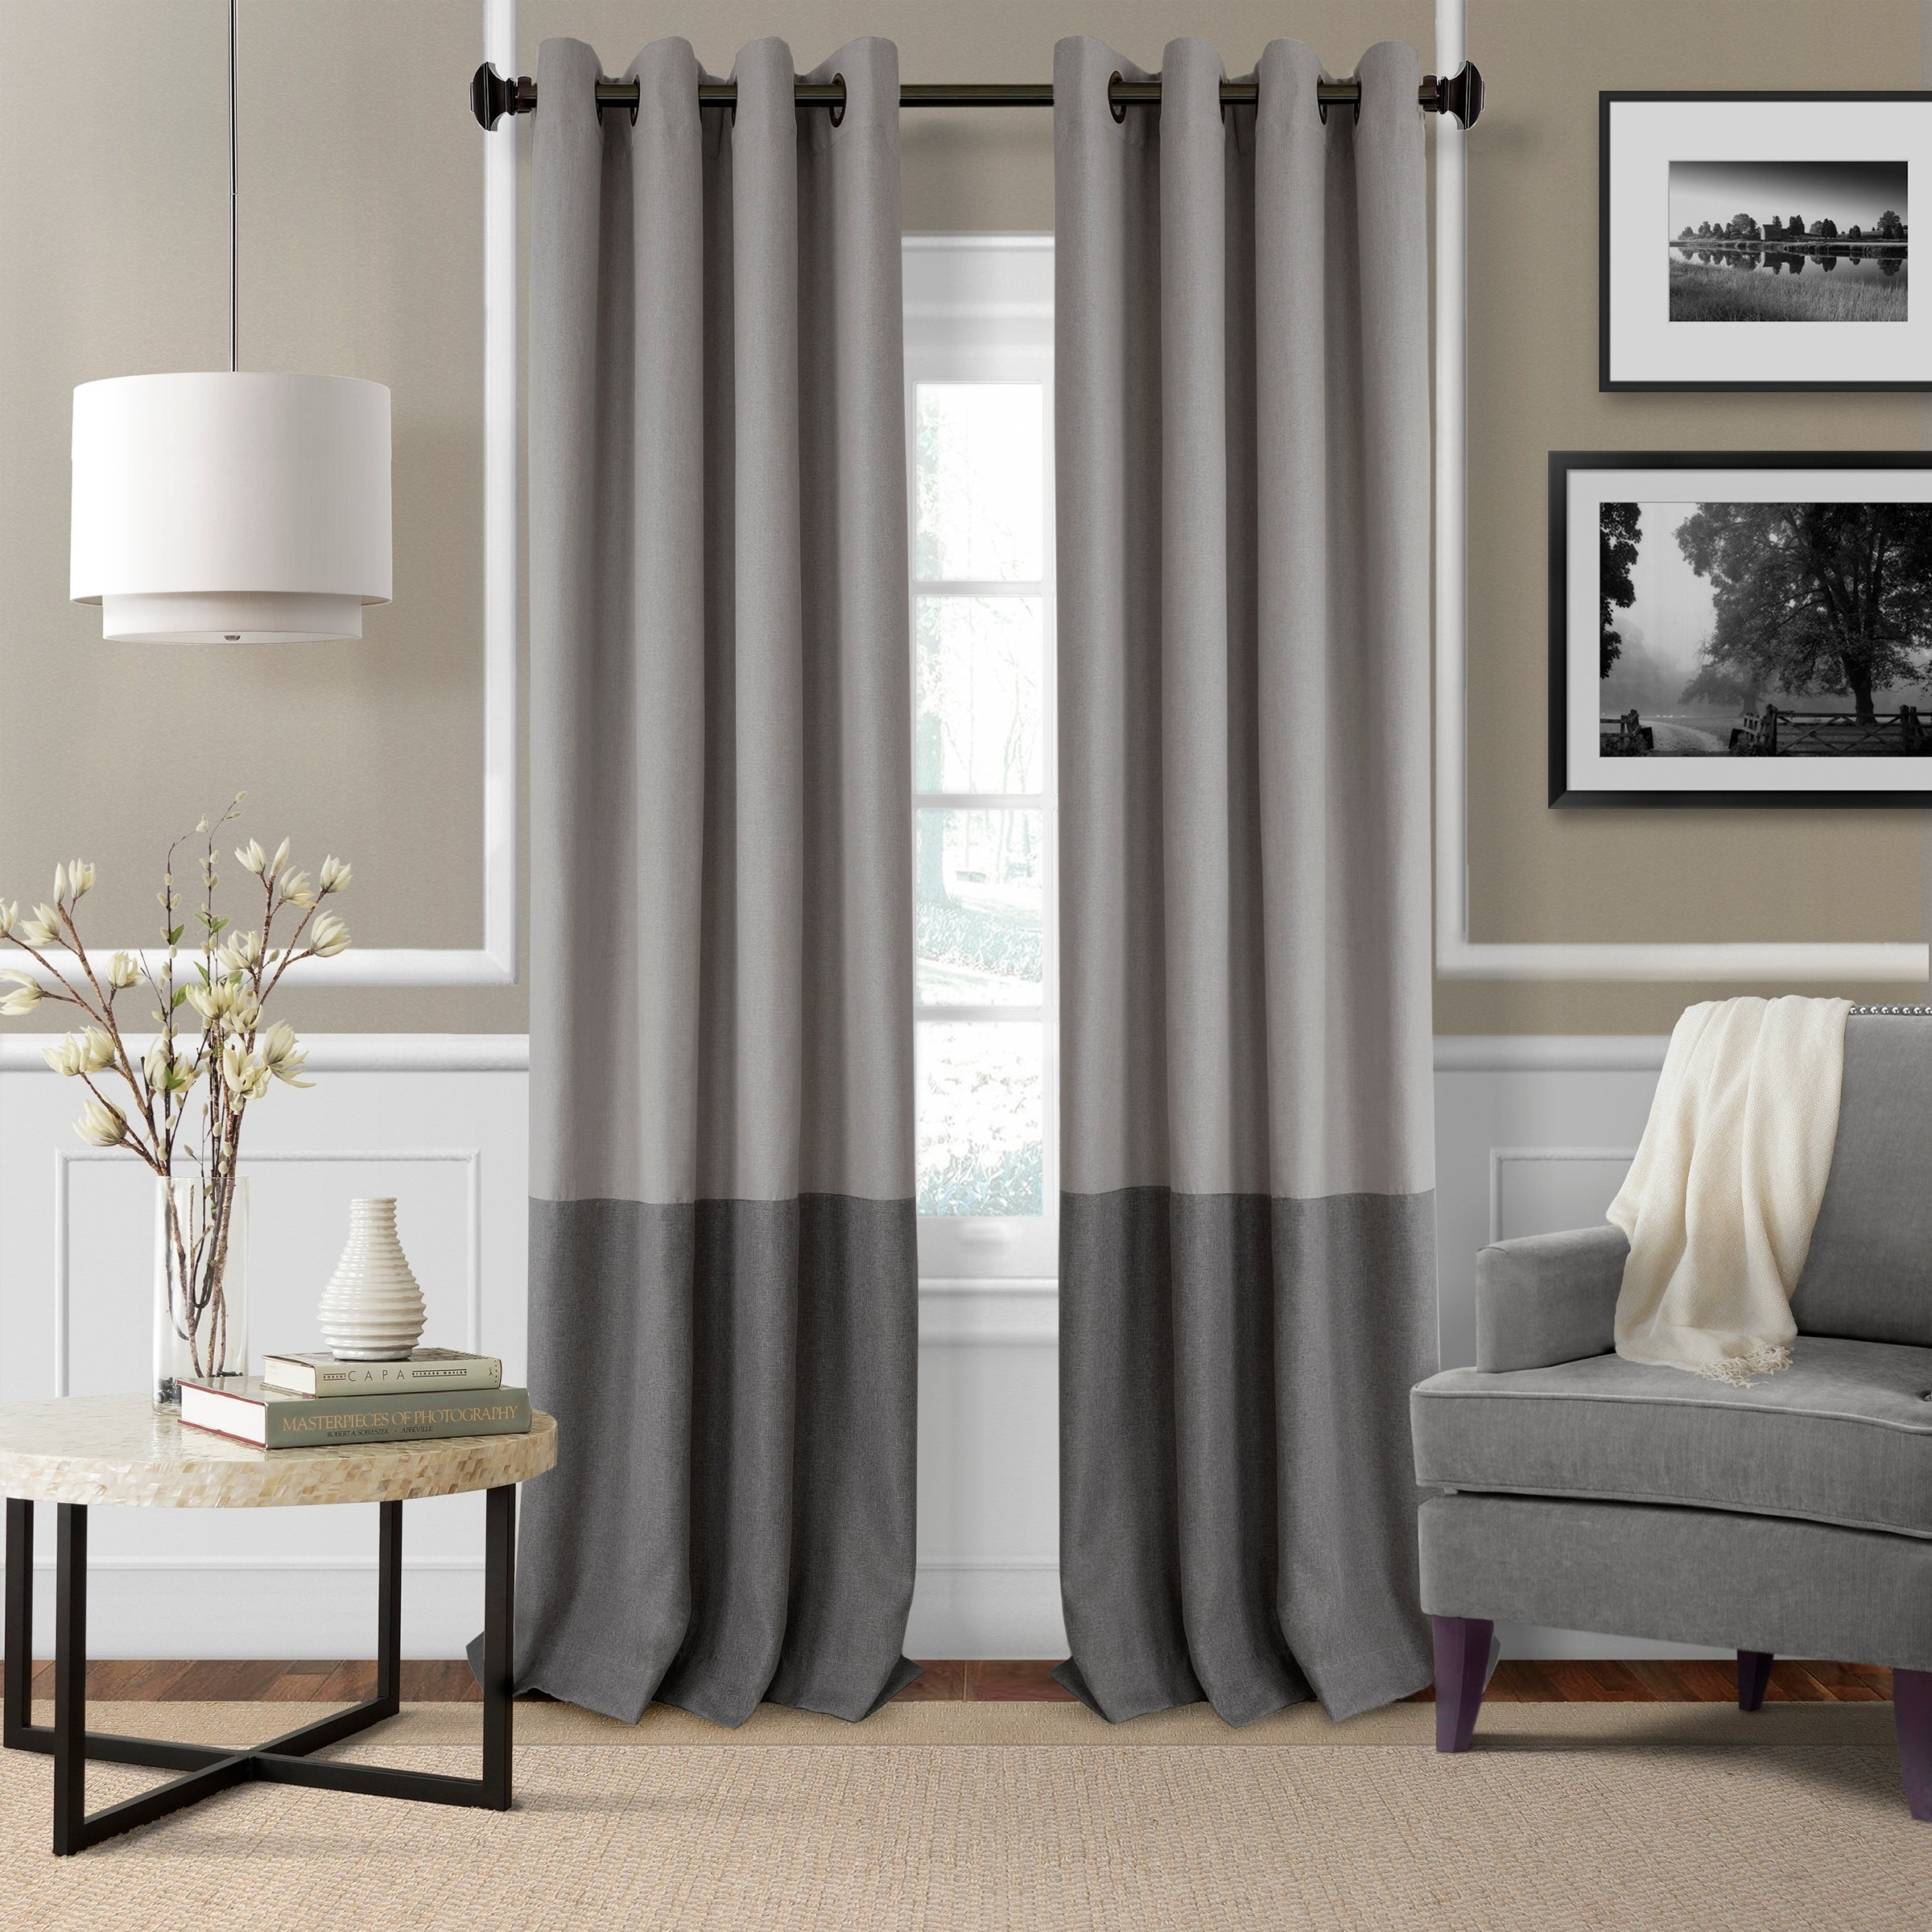 overstock on garden curtain linen home free panel product sheer gray orders curtains over vcny shipping stripe windsor pair